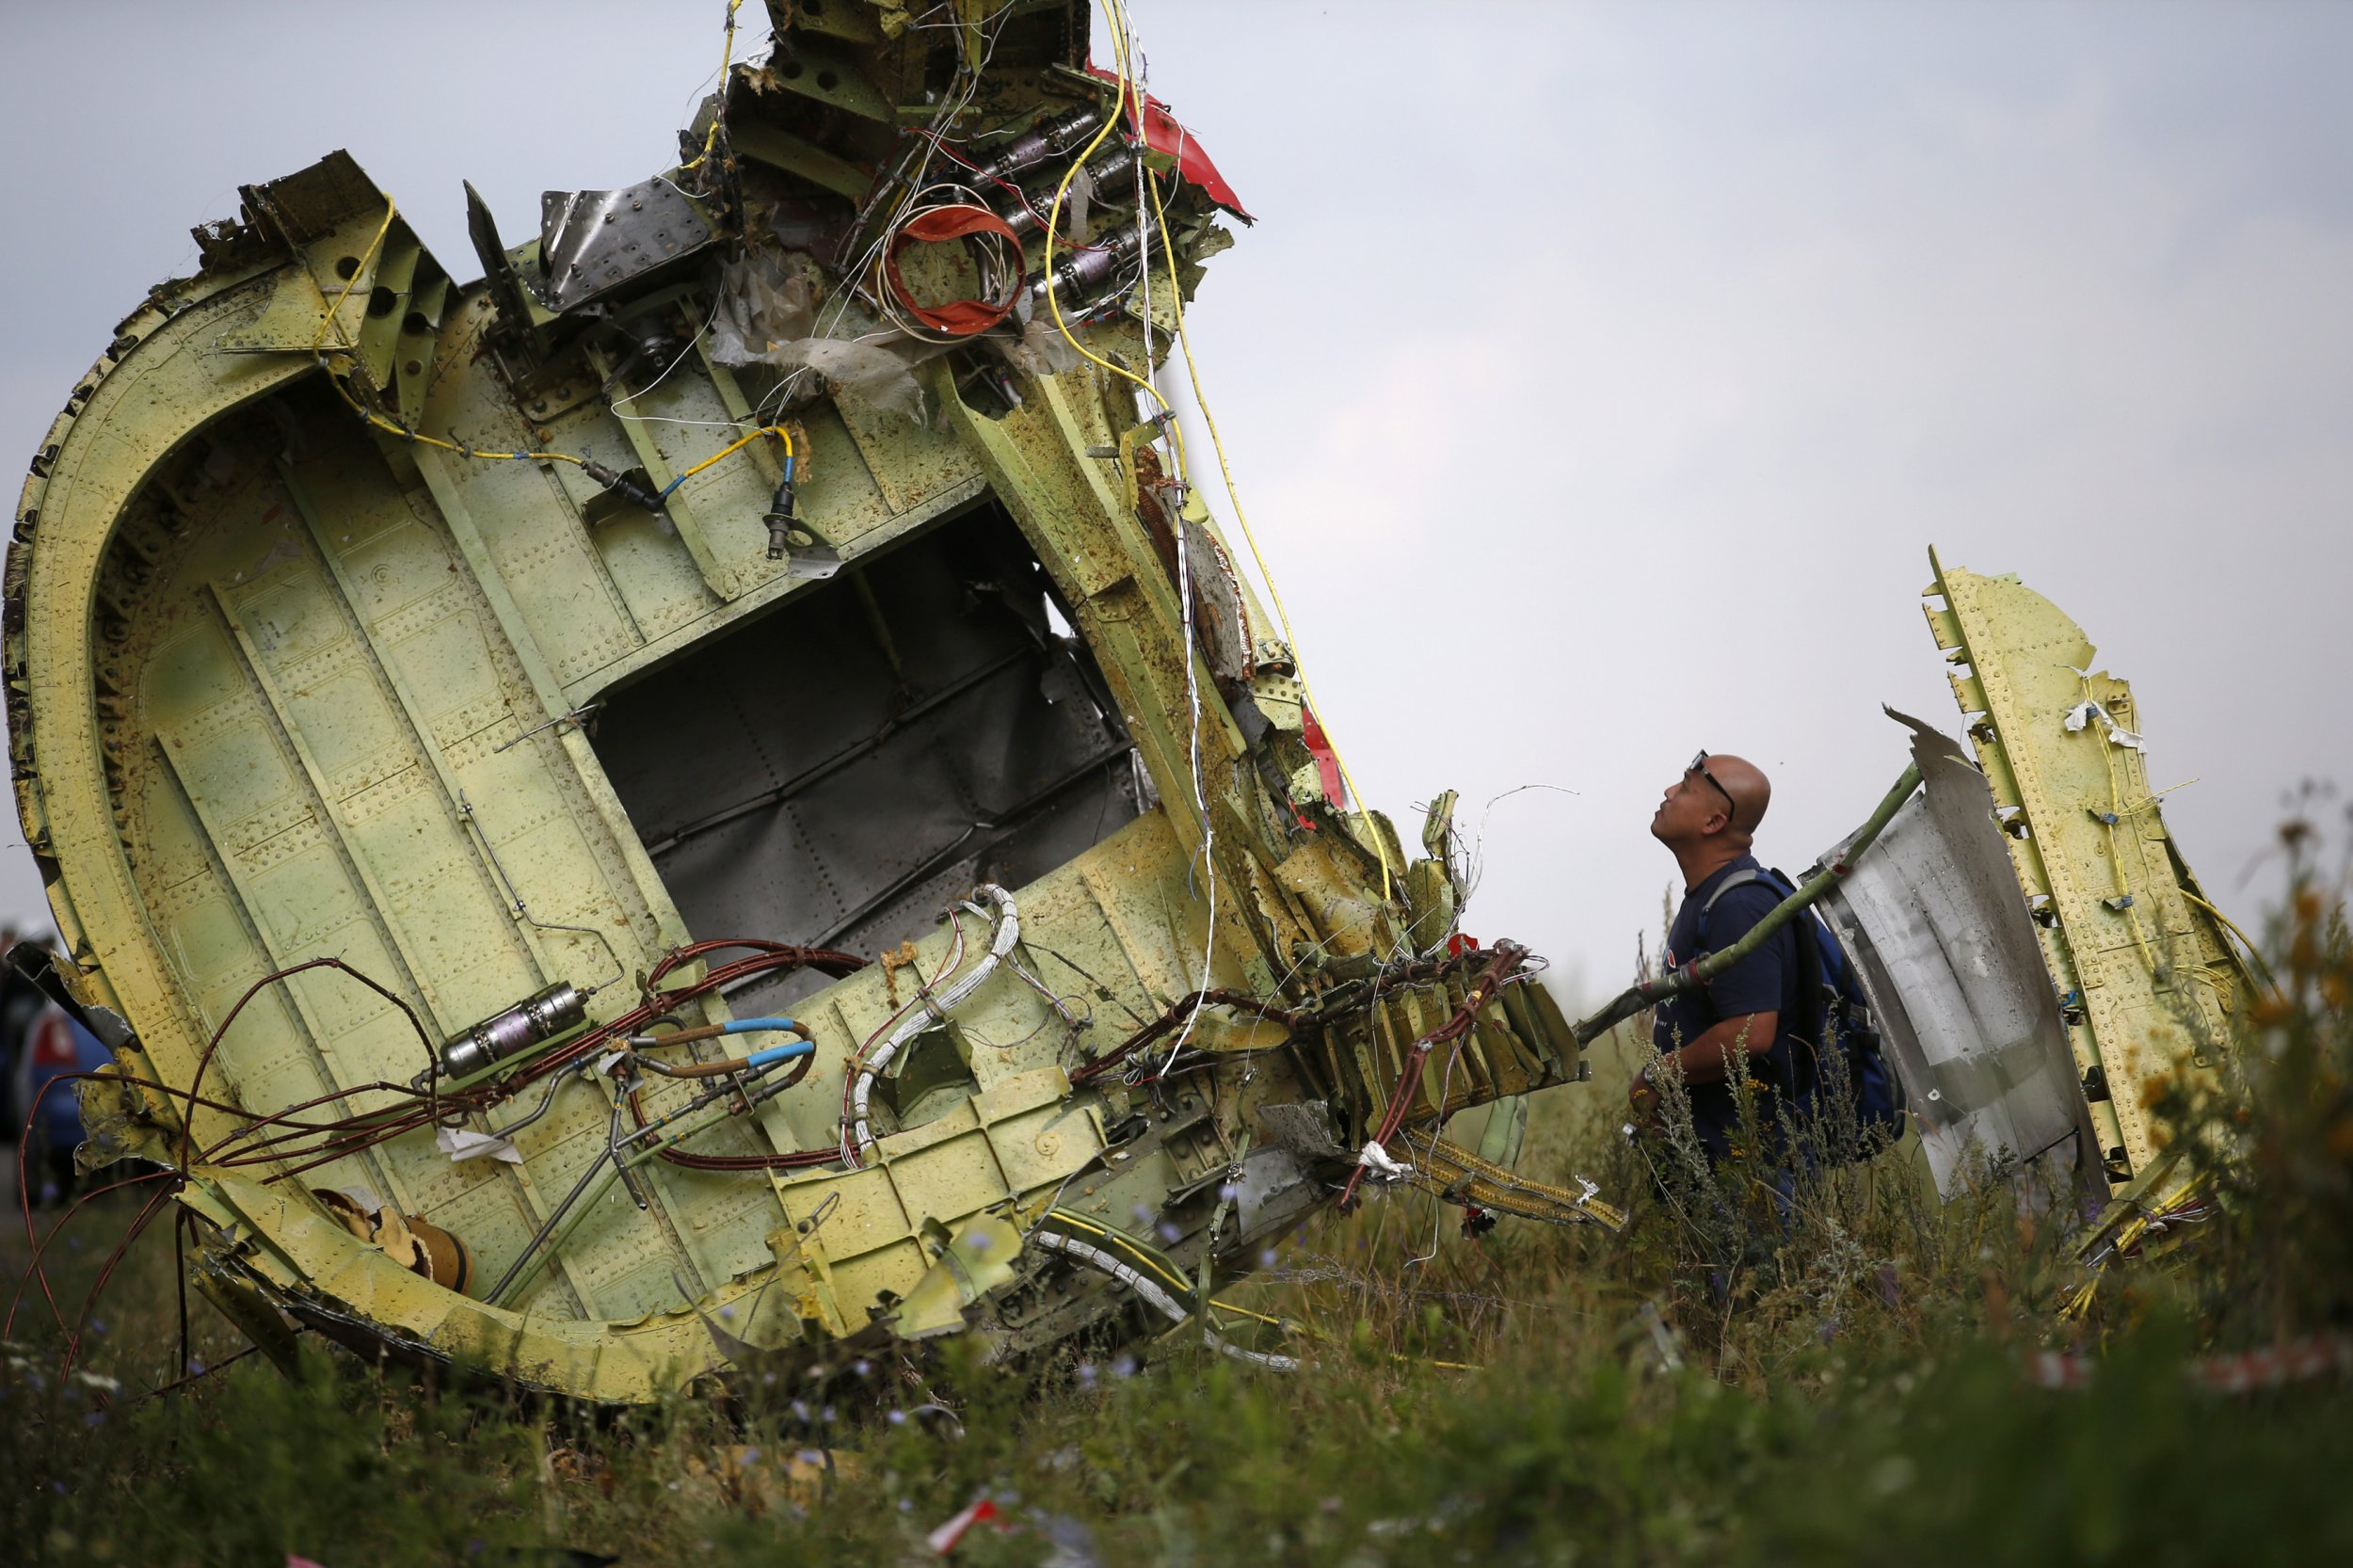 07_17_MH17_Flight_01